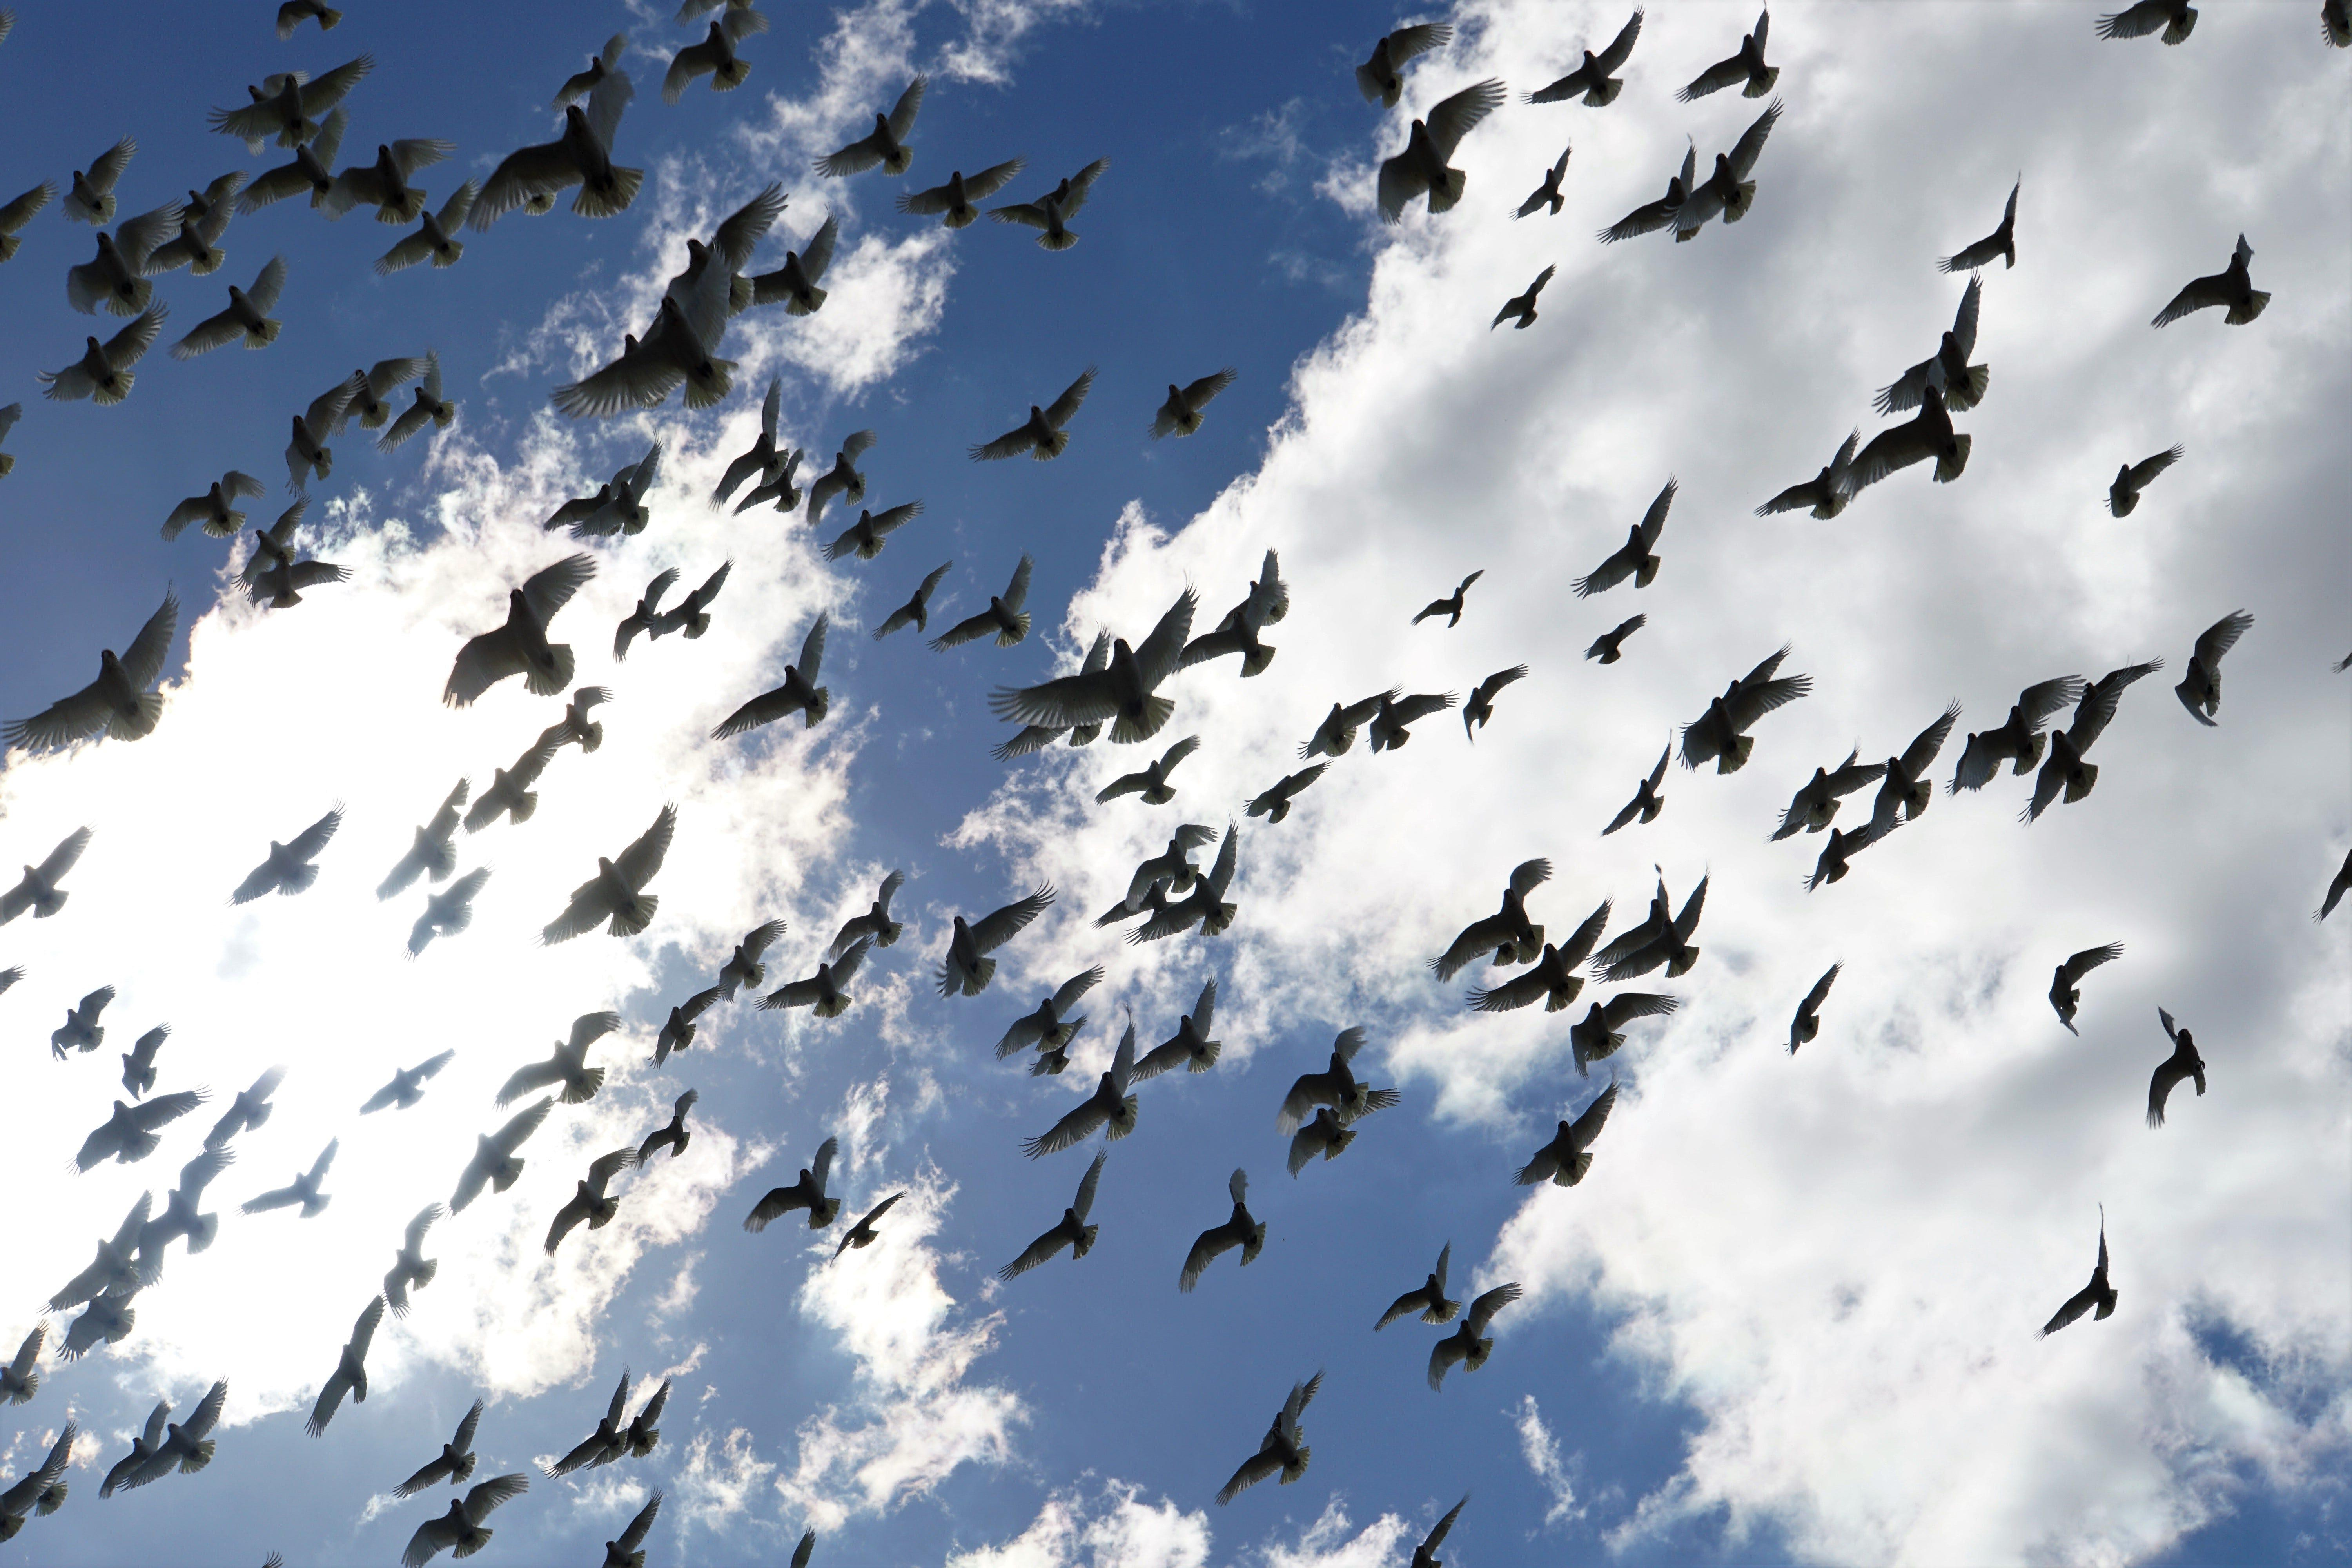 Birds suspected to be poisoned fell out of sky in Australia